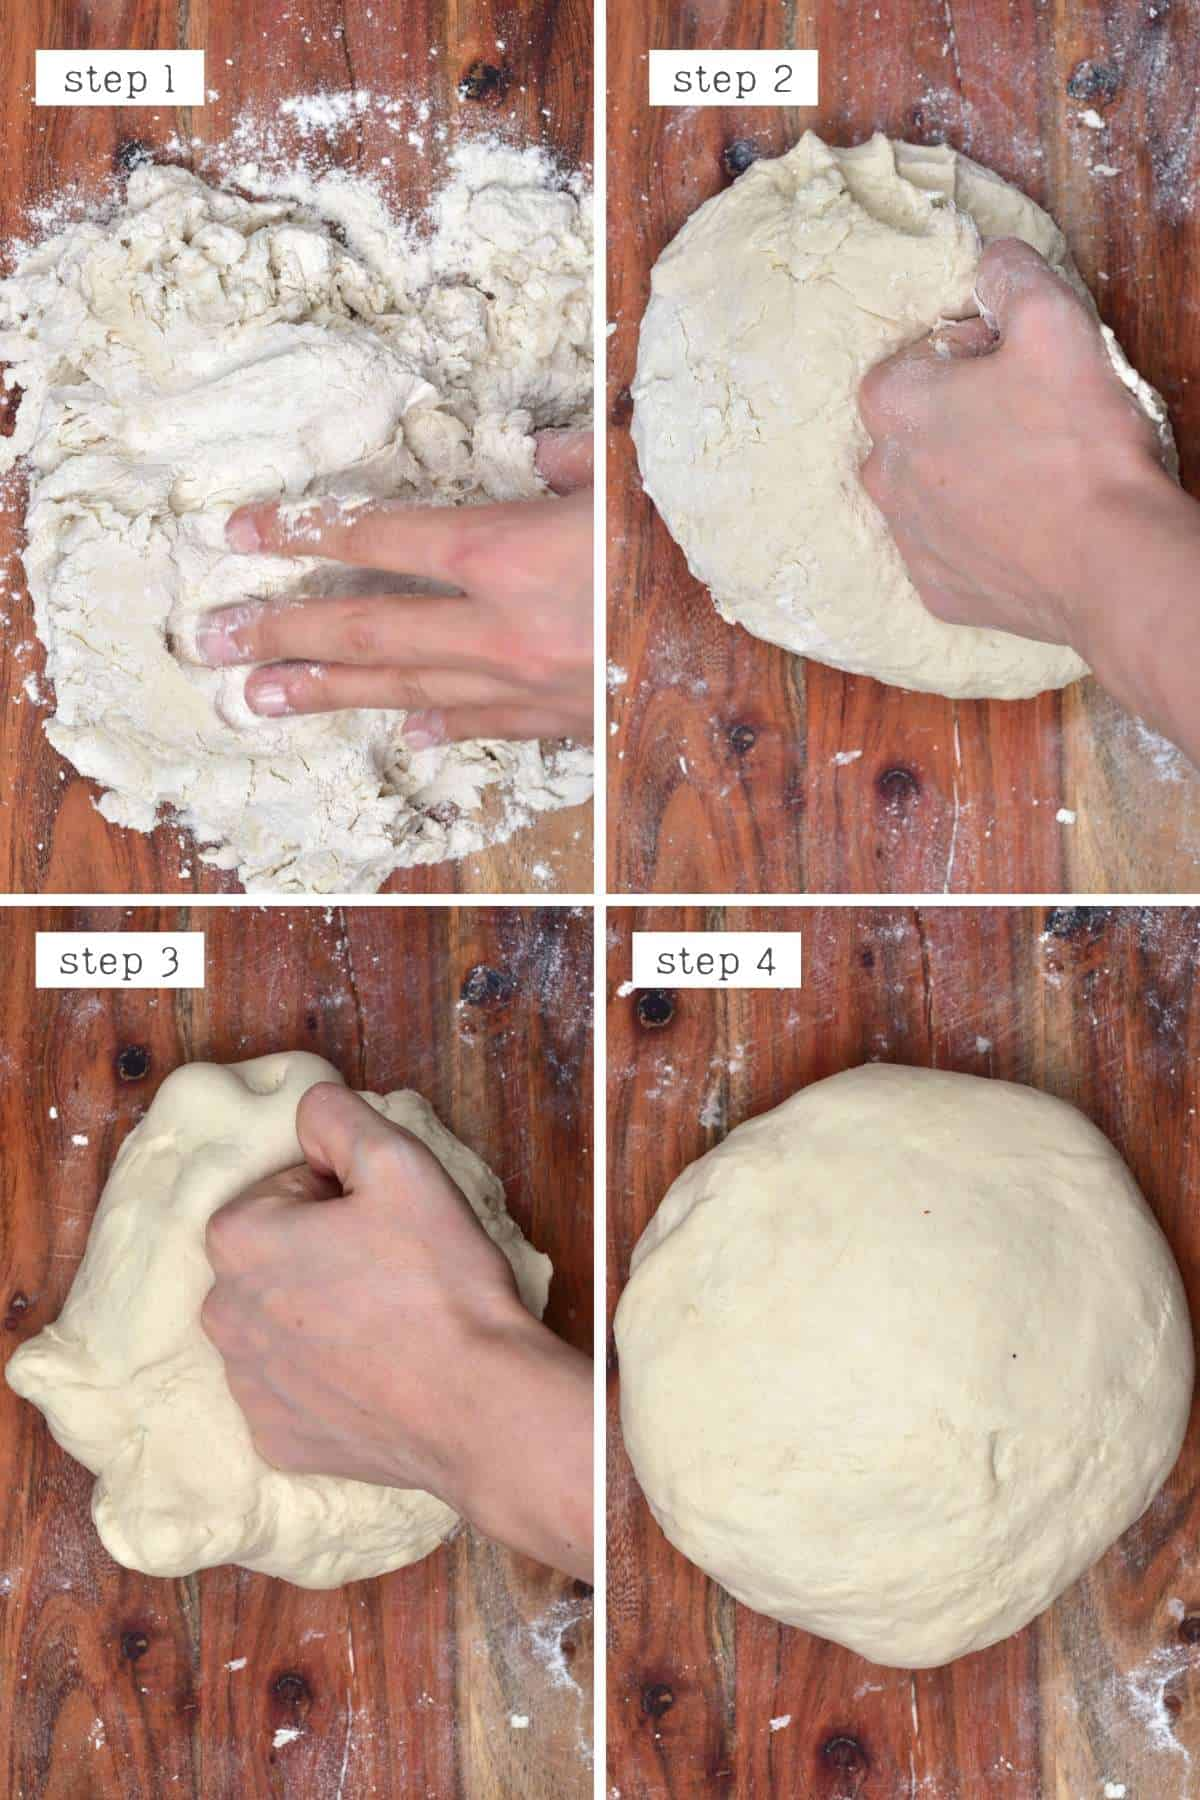 Steps for kneading dough